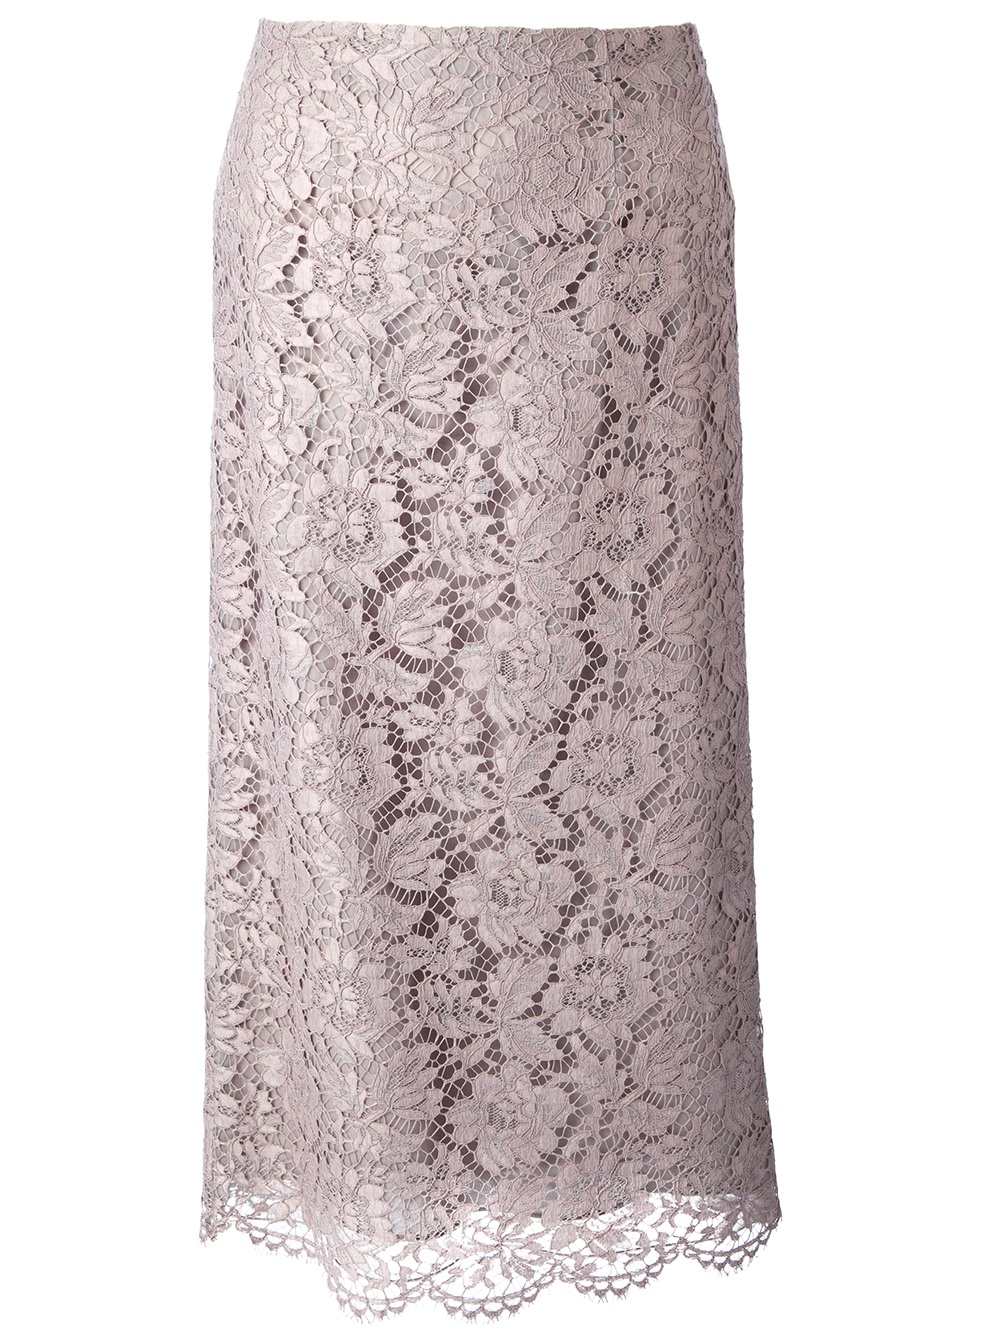 Valentino Lace Skirt in Gray | Lyst